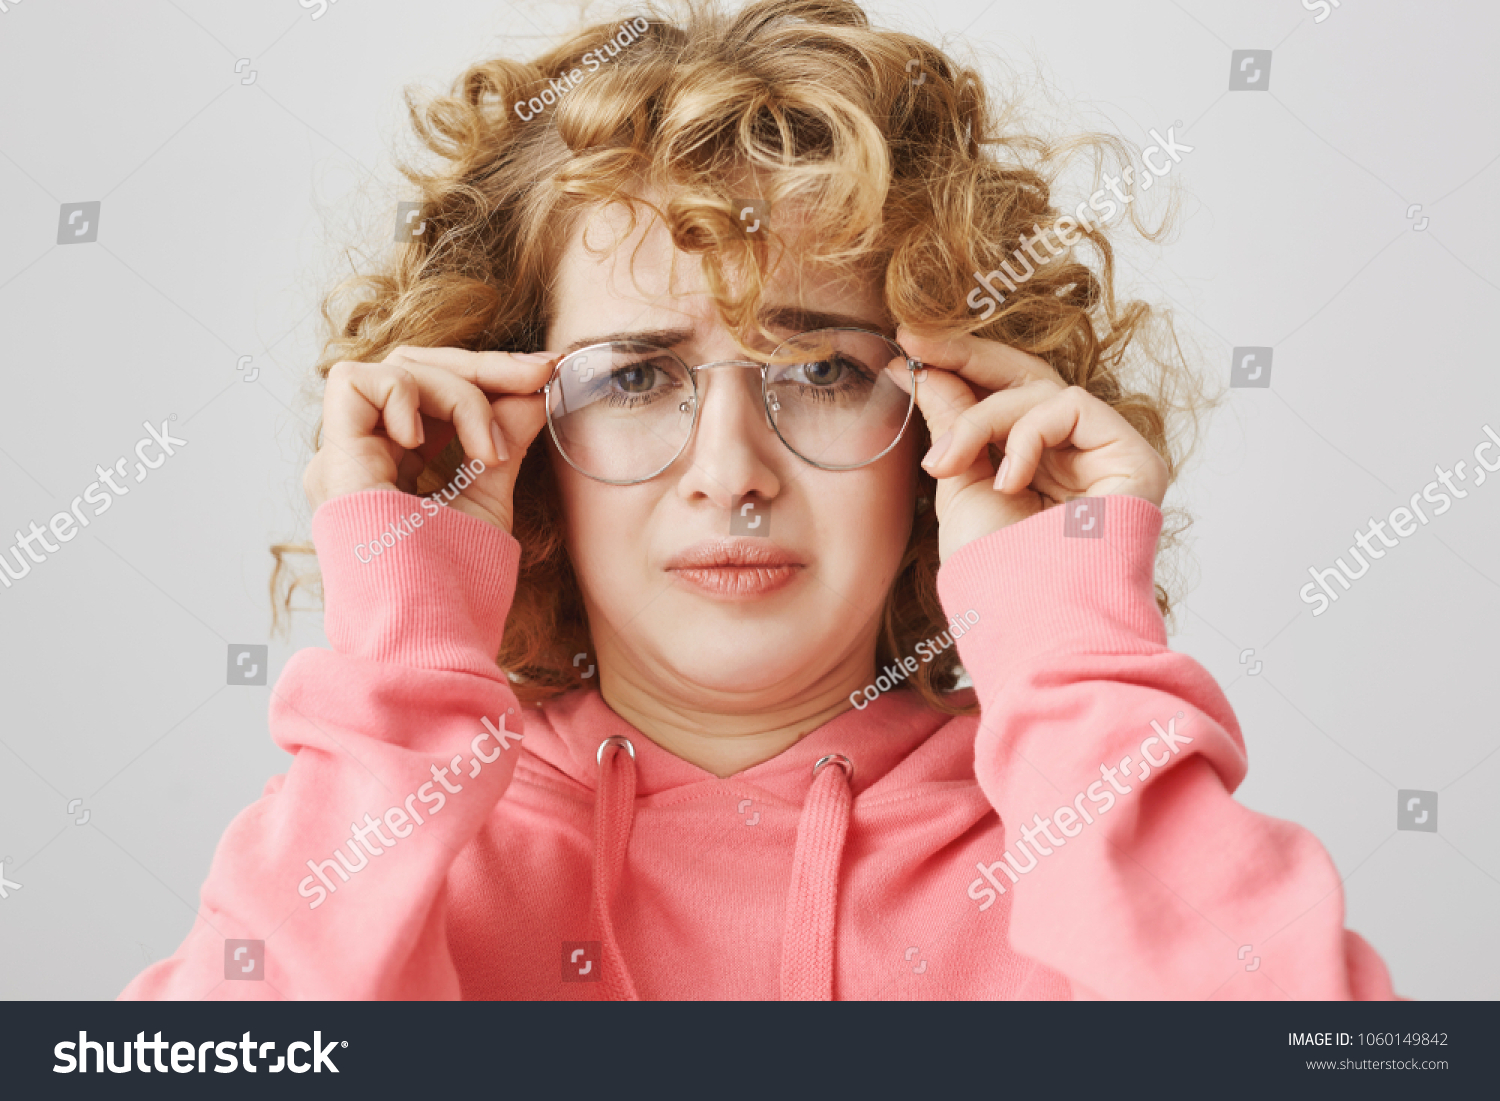 Cute Curlyhaired Girl Weird Expression Bending Stock Photo Edit Now